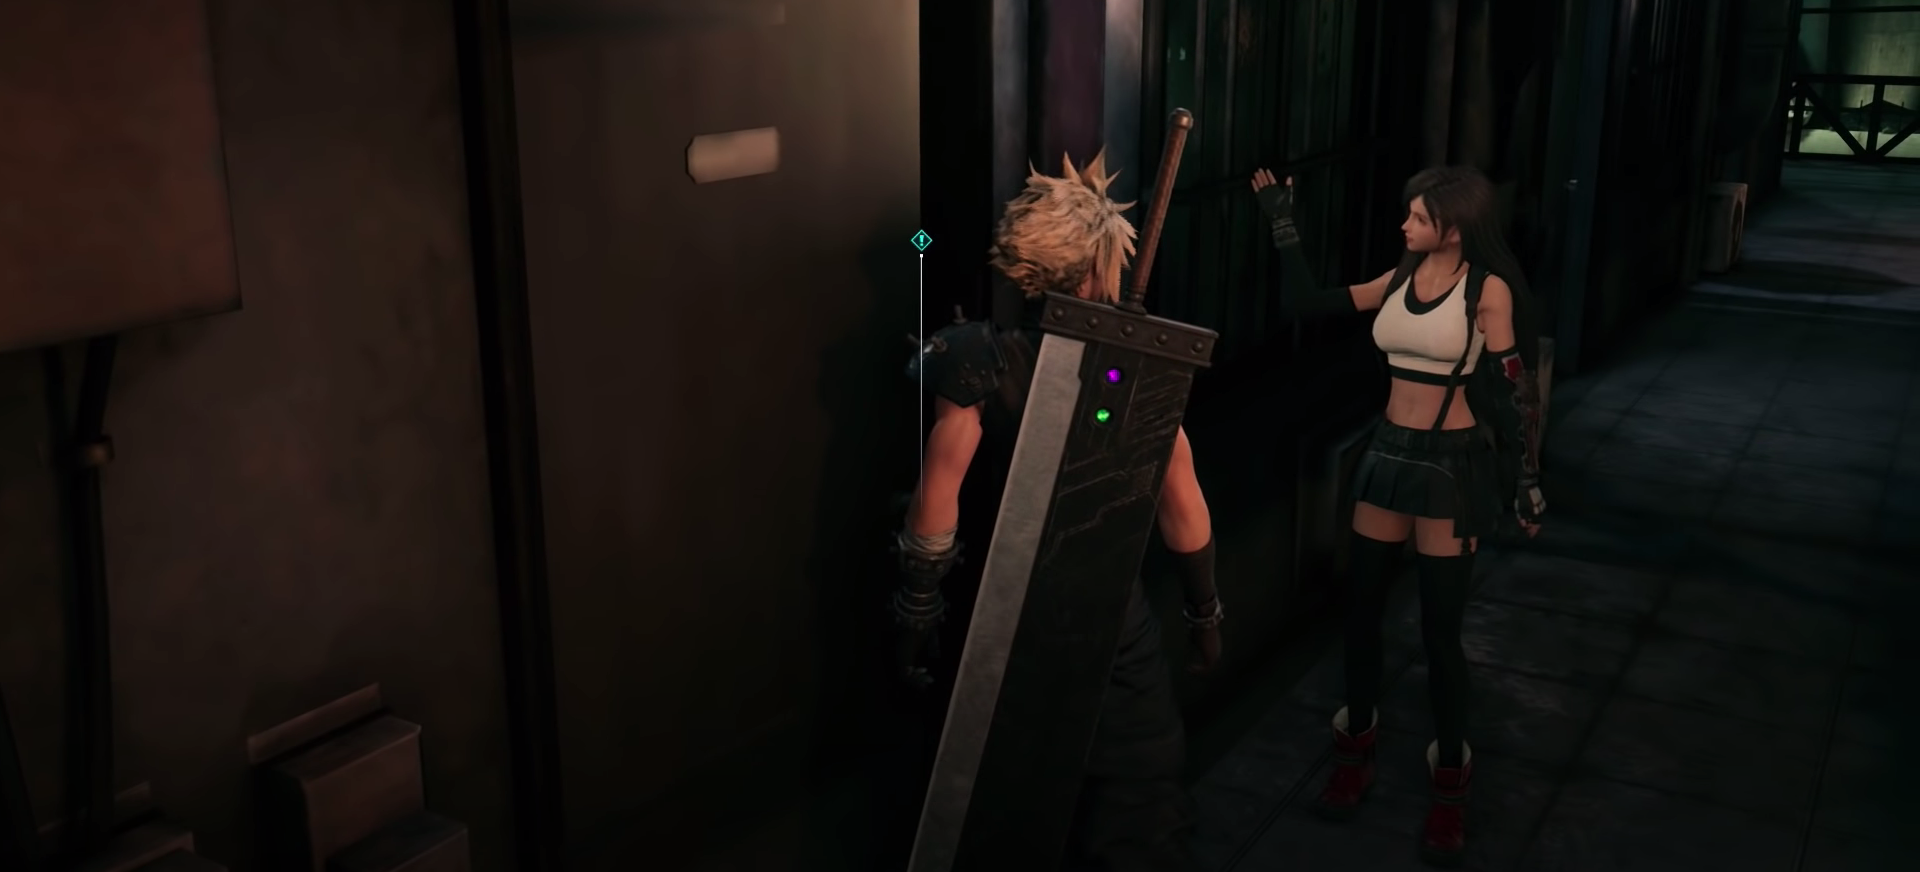 Tifa's Door Texture Issues